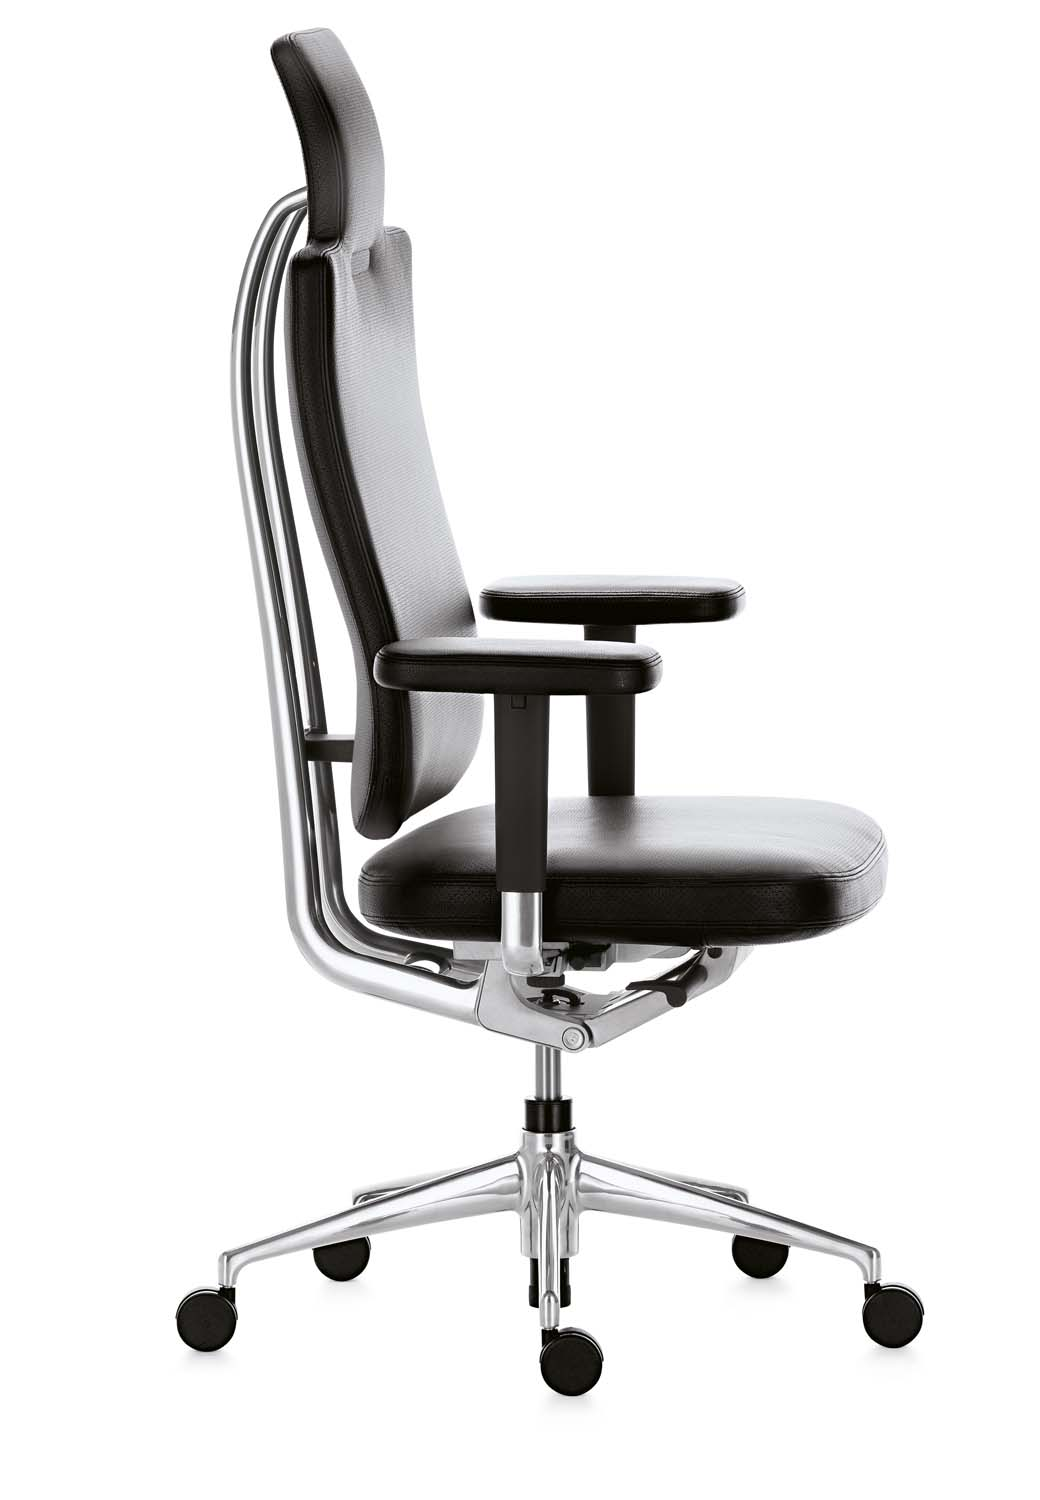 office chair qvc medieval dining chairs seating benchmarque